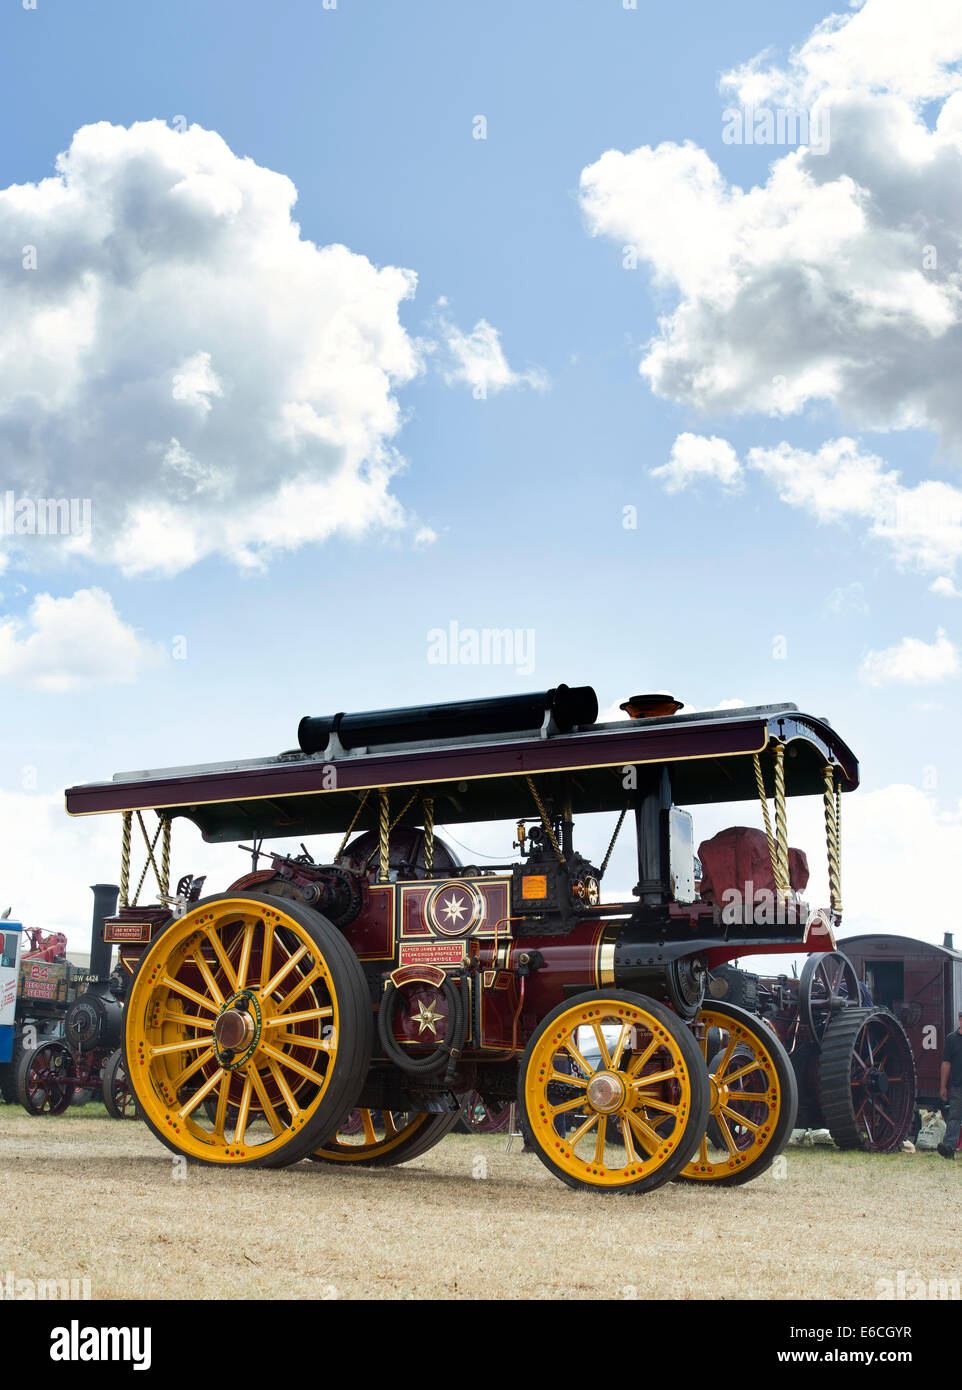 Showmans Traction Engine at a steam fair in England - Stock Image